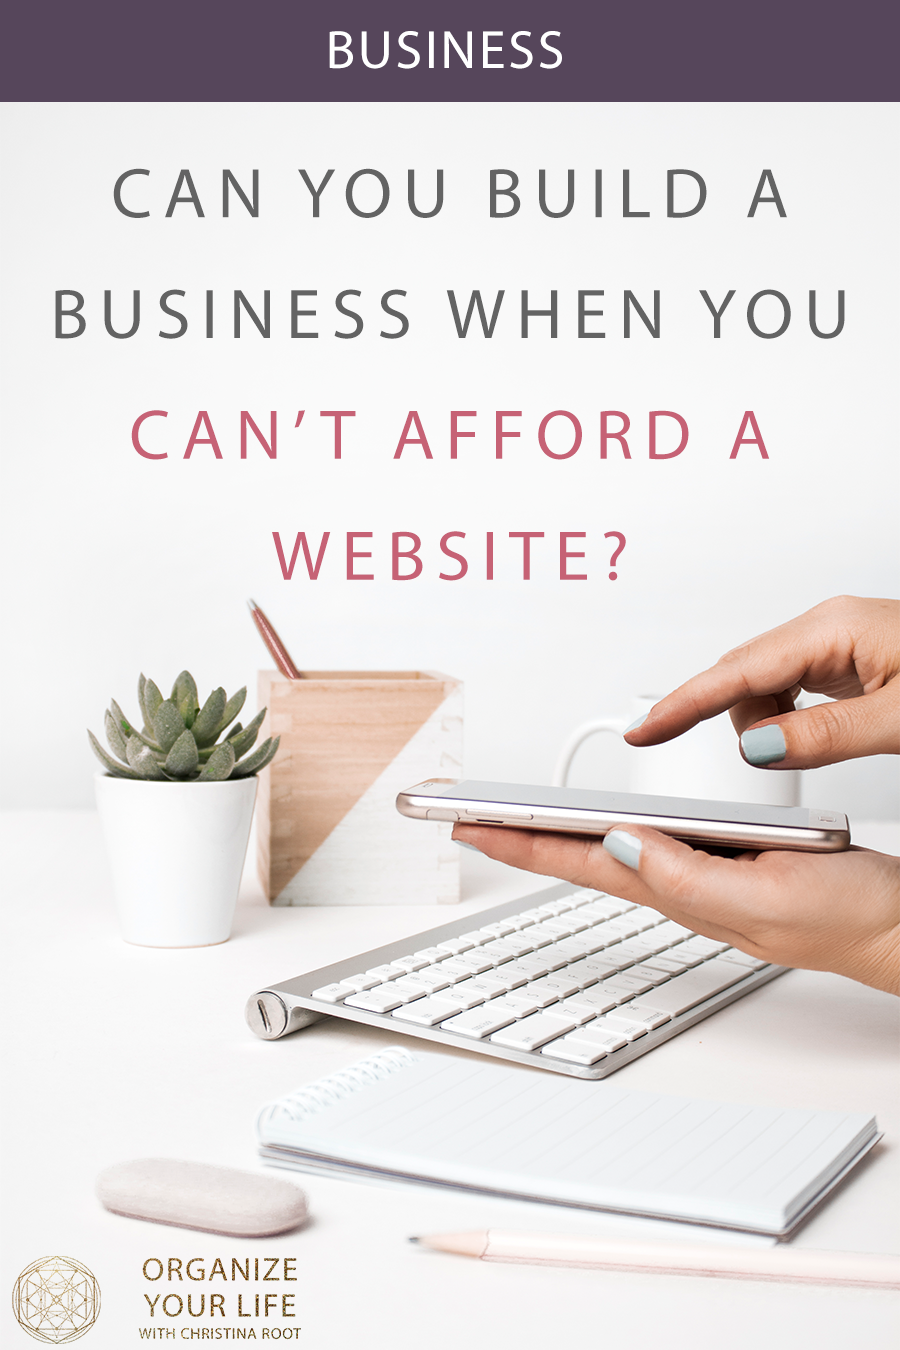 Can you build a business when you can't afford a website?